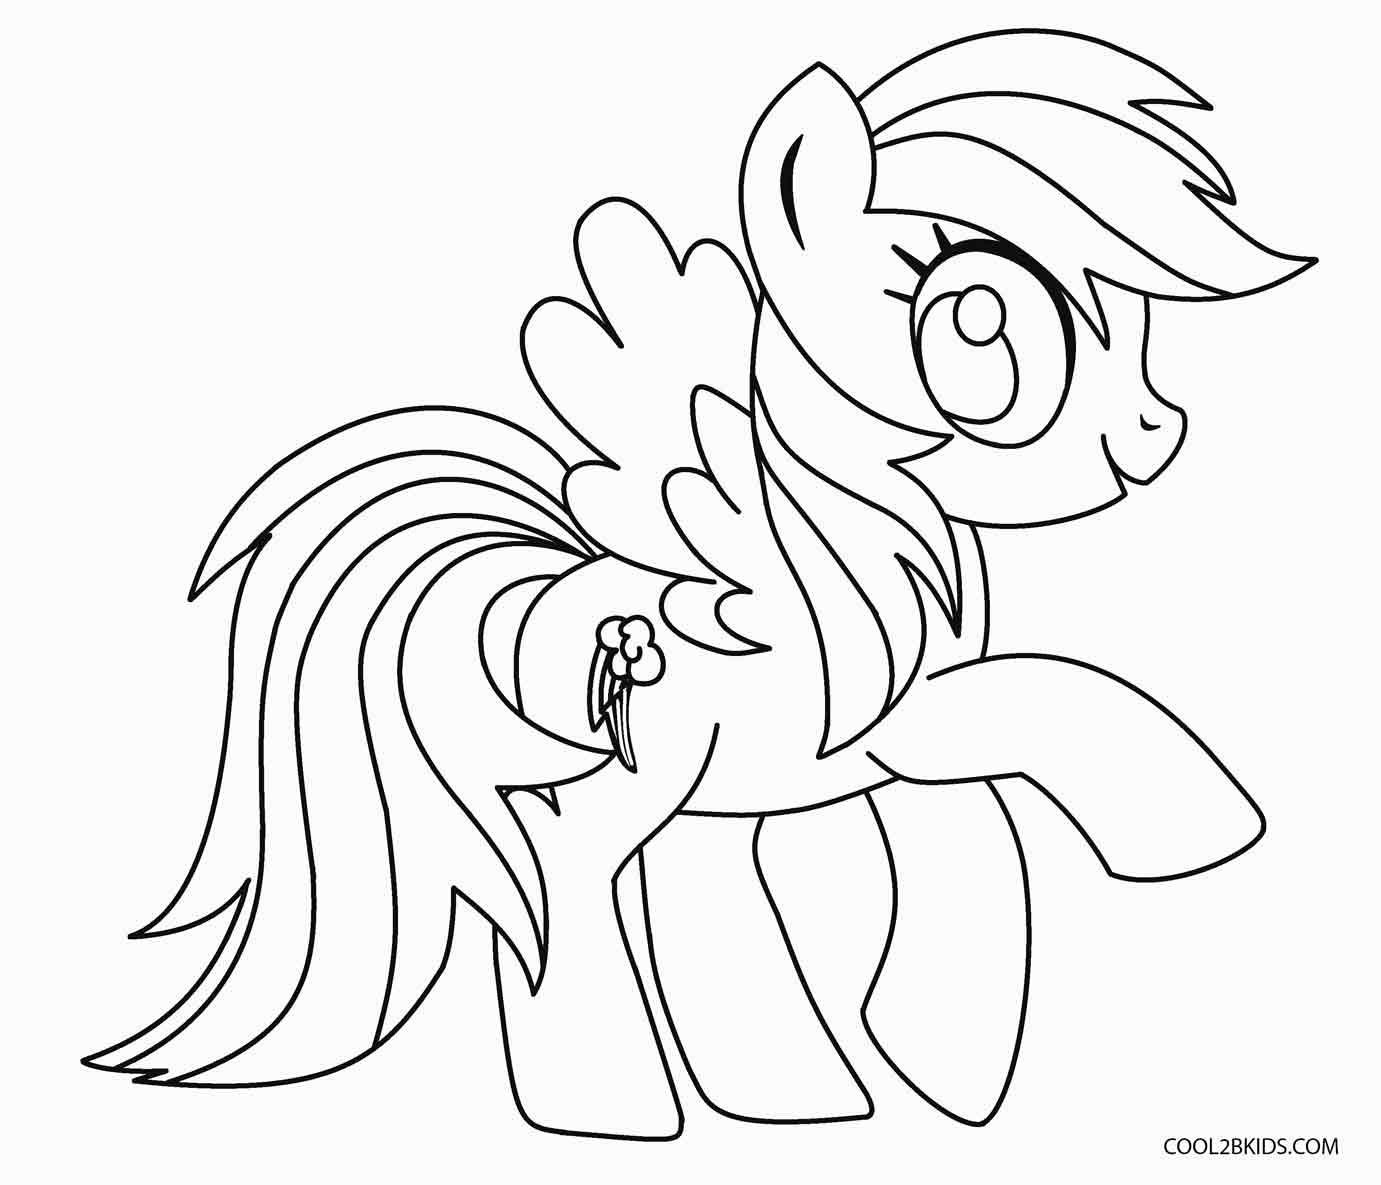 my little pony print out coloring pages my little pony coloring page coloring home pony print my little coloring pages out